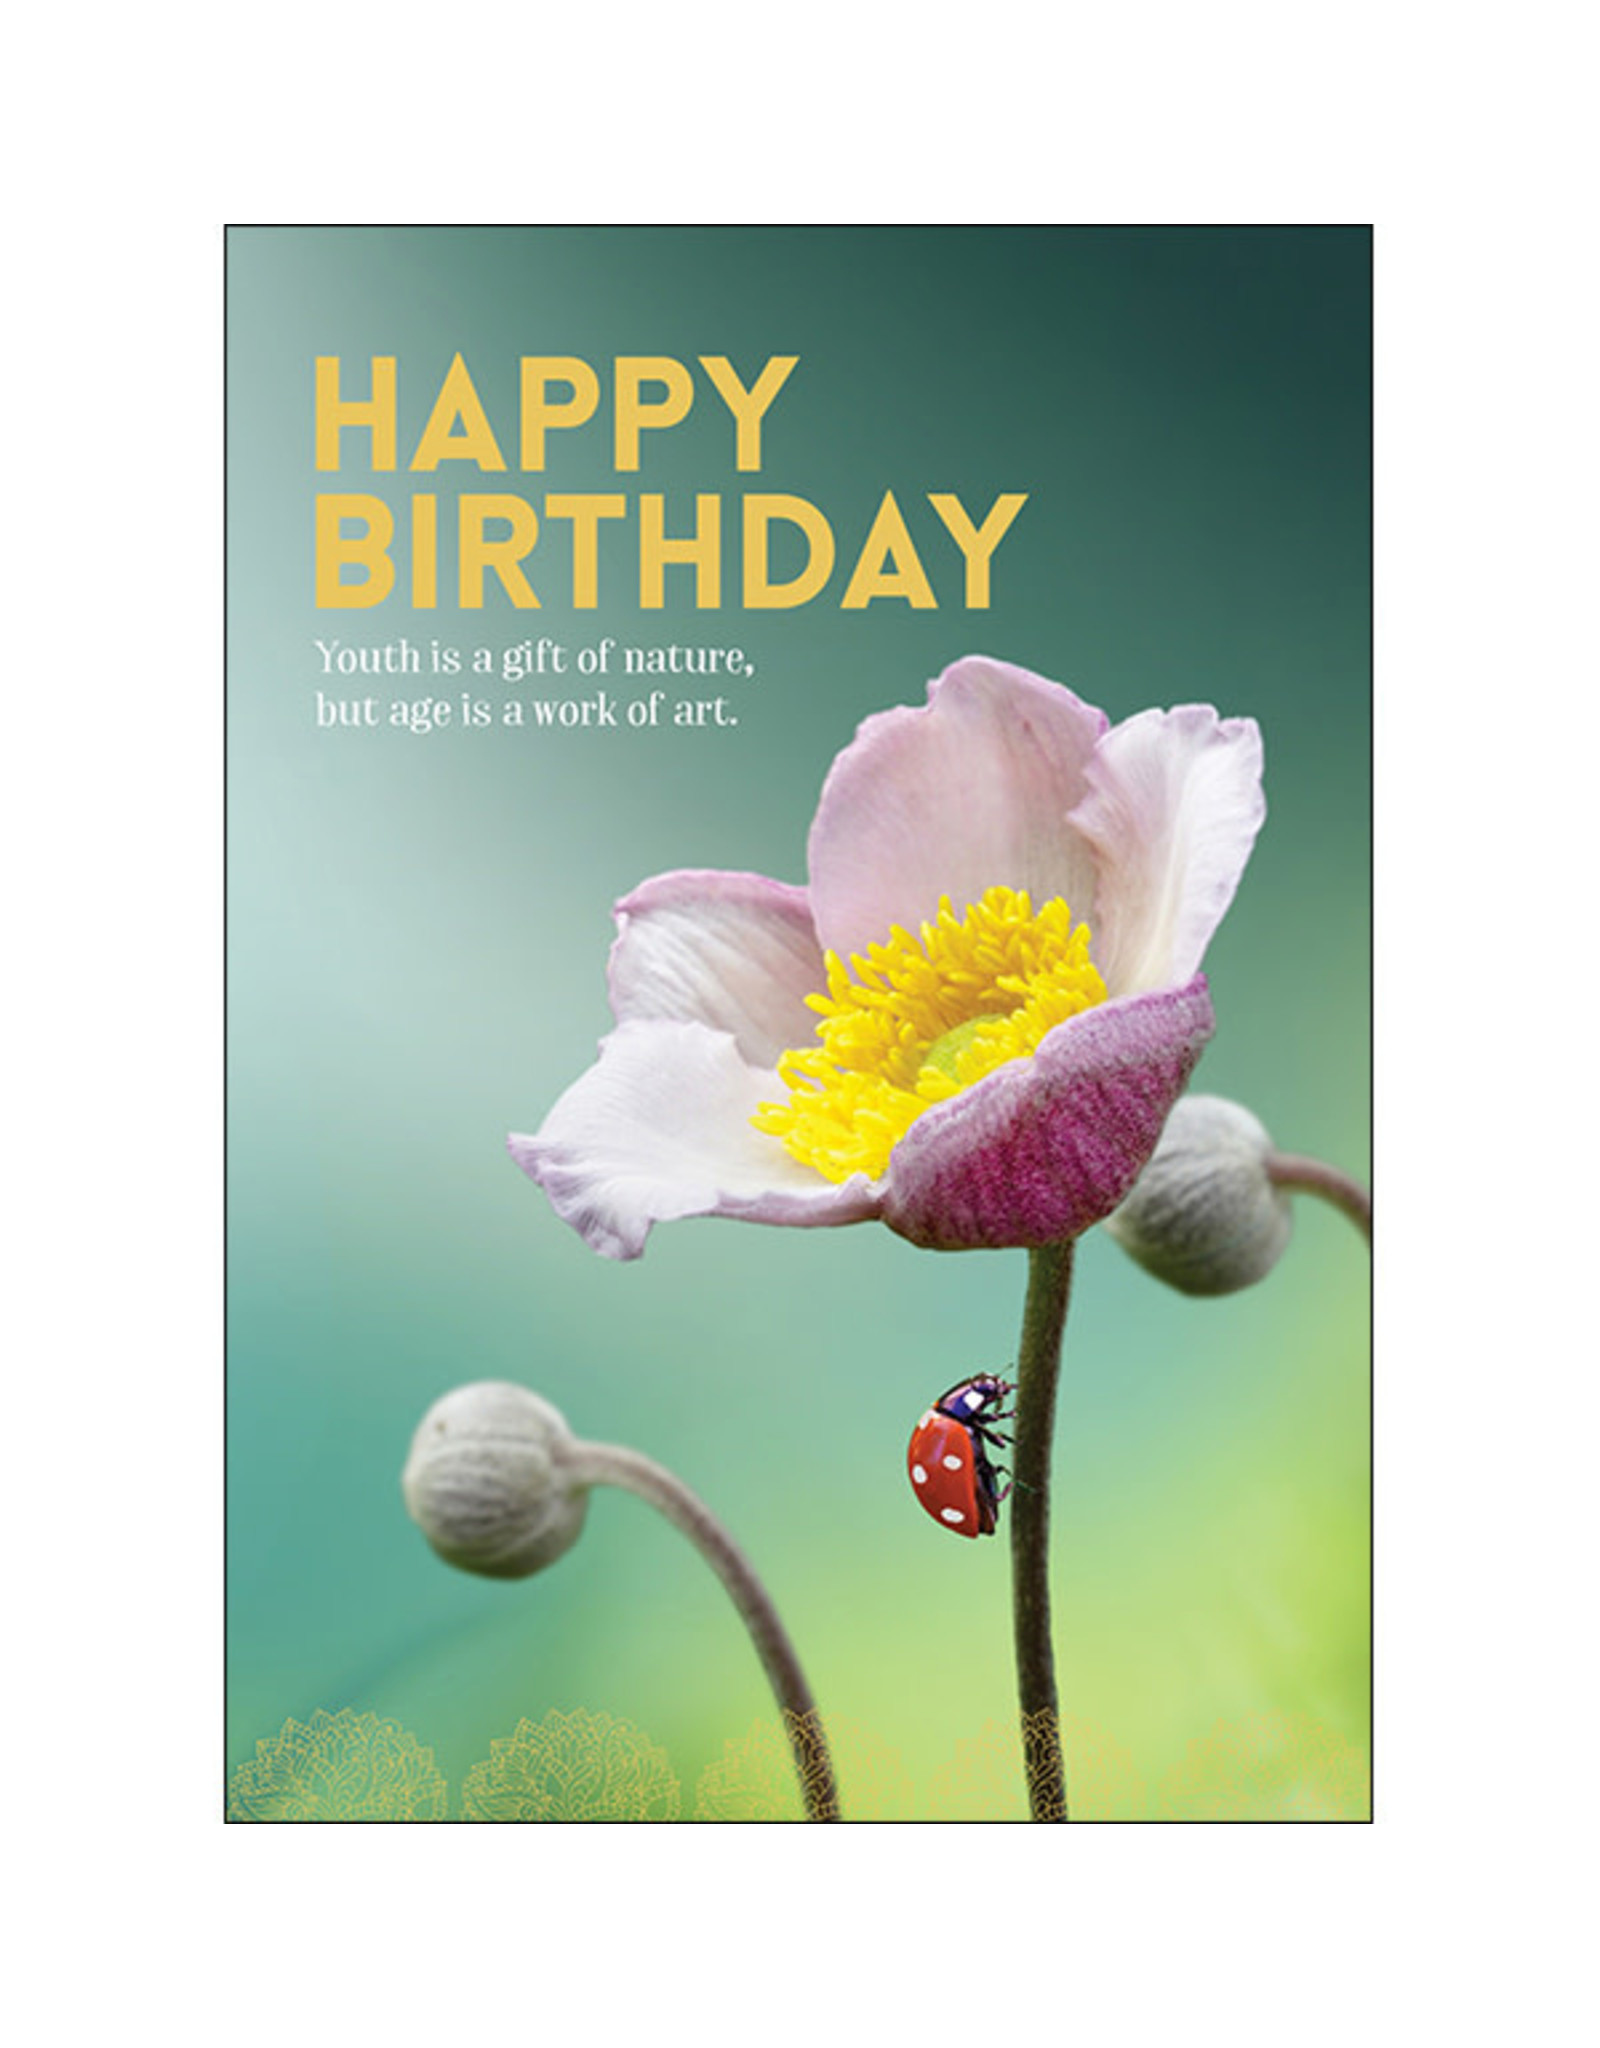 Affirmations Publishing House Greeting Card - Youth is a Gift of Nature